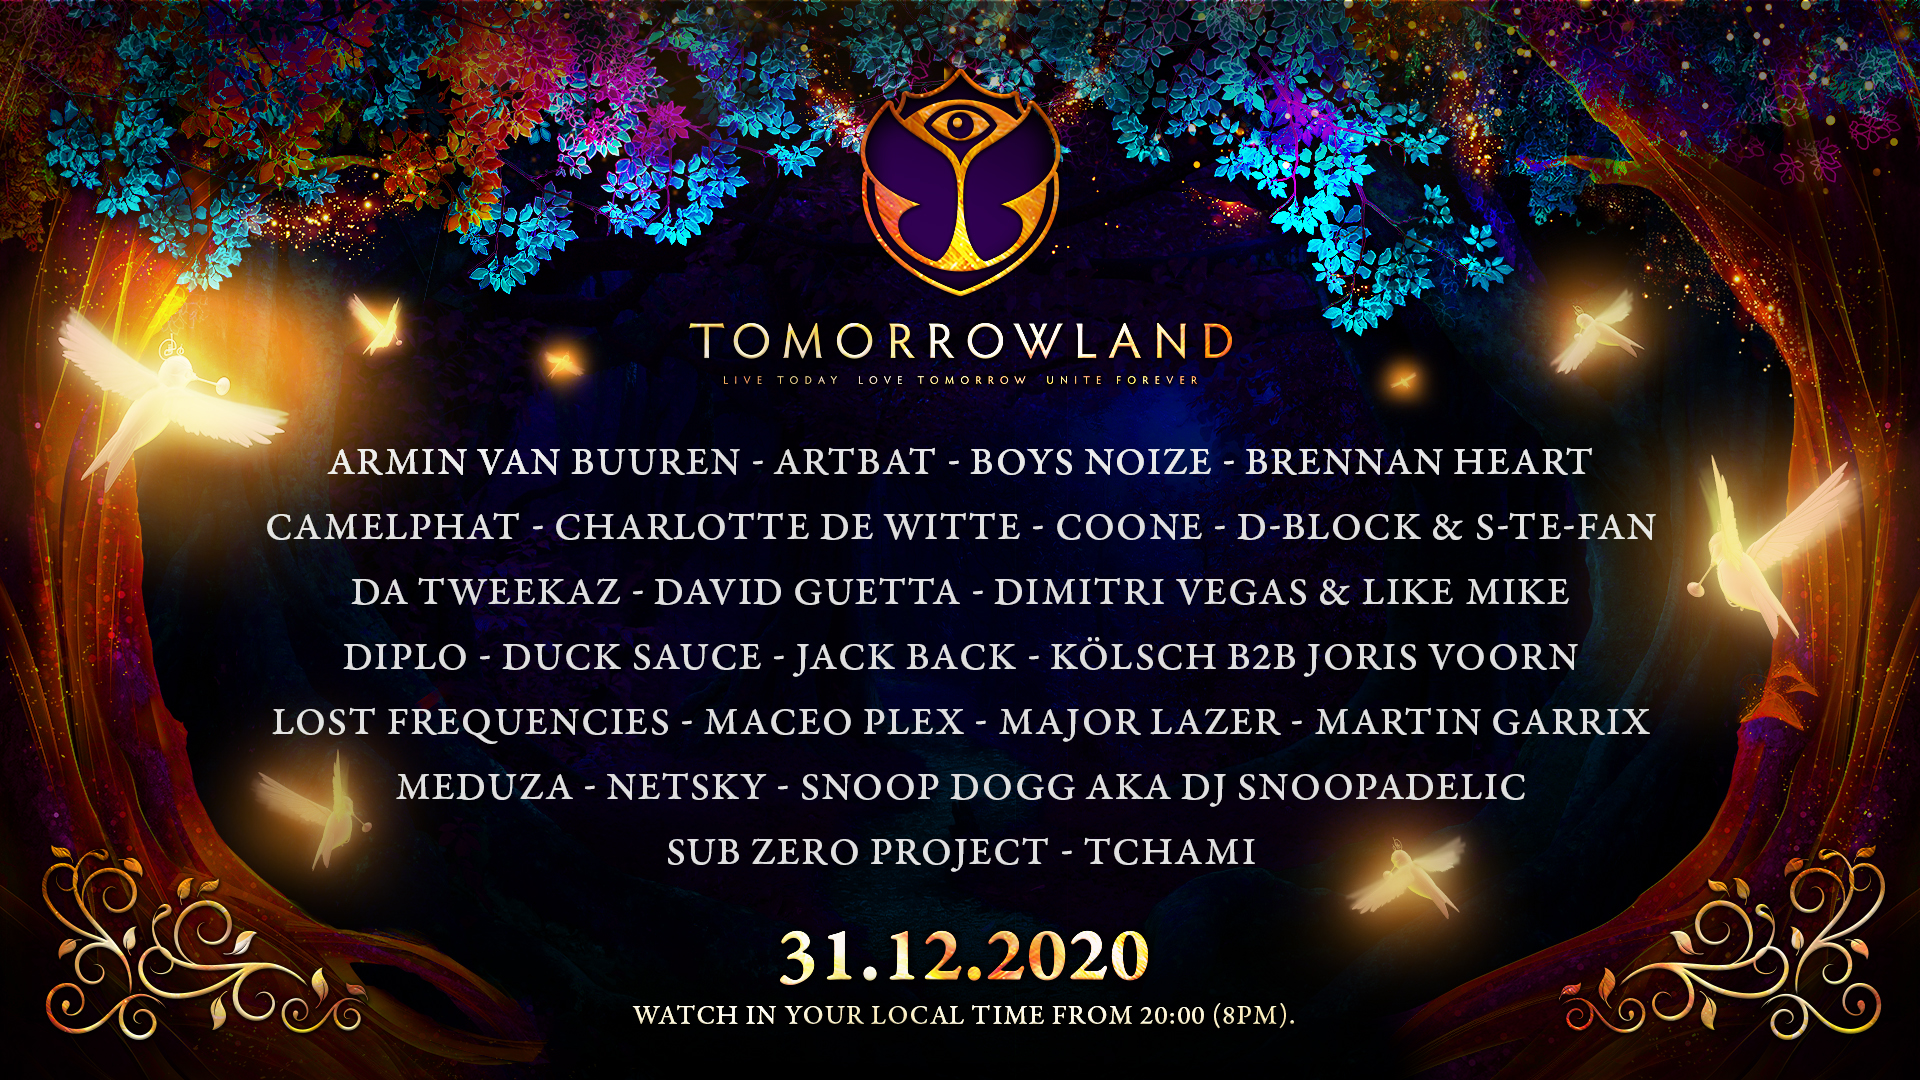 Tomorrowland line up